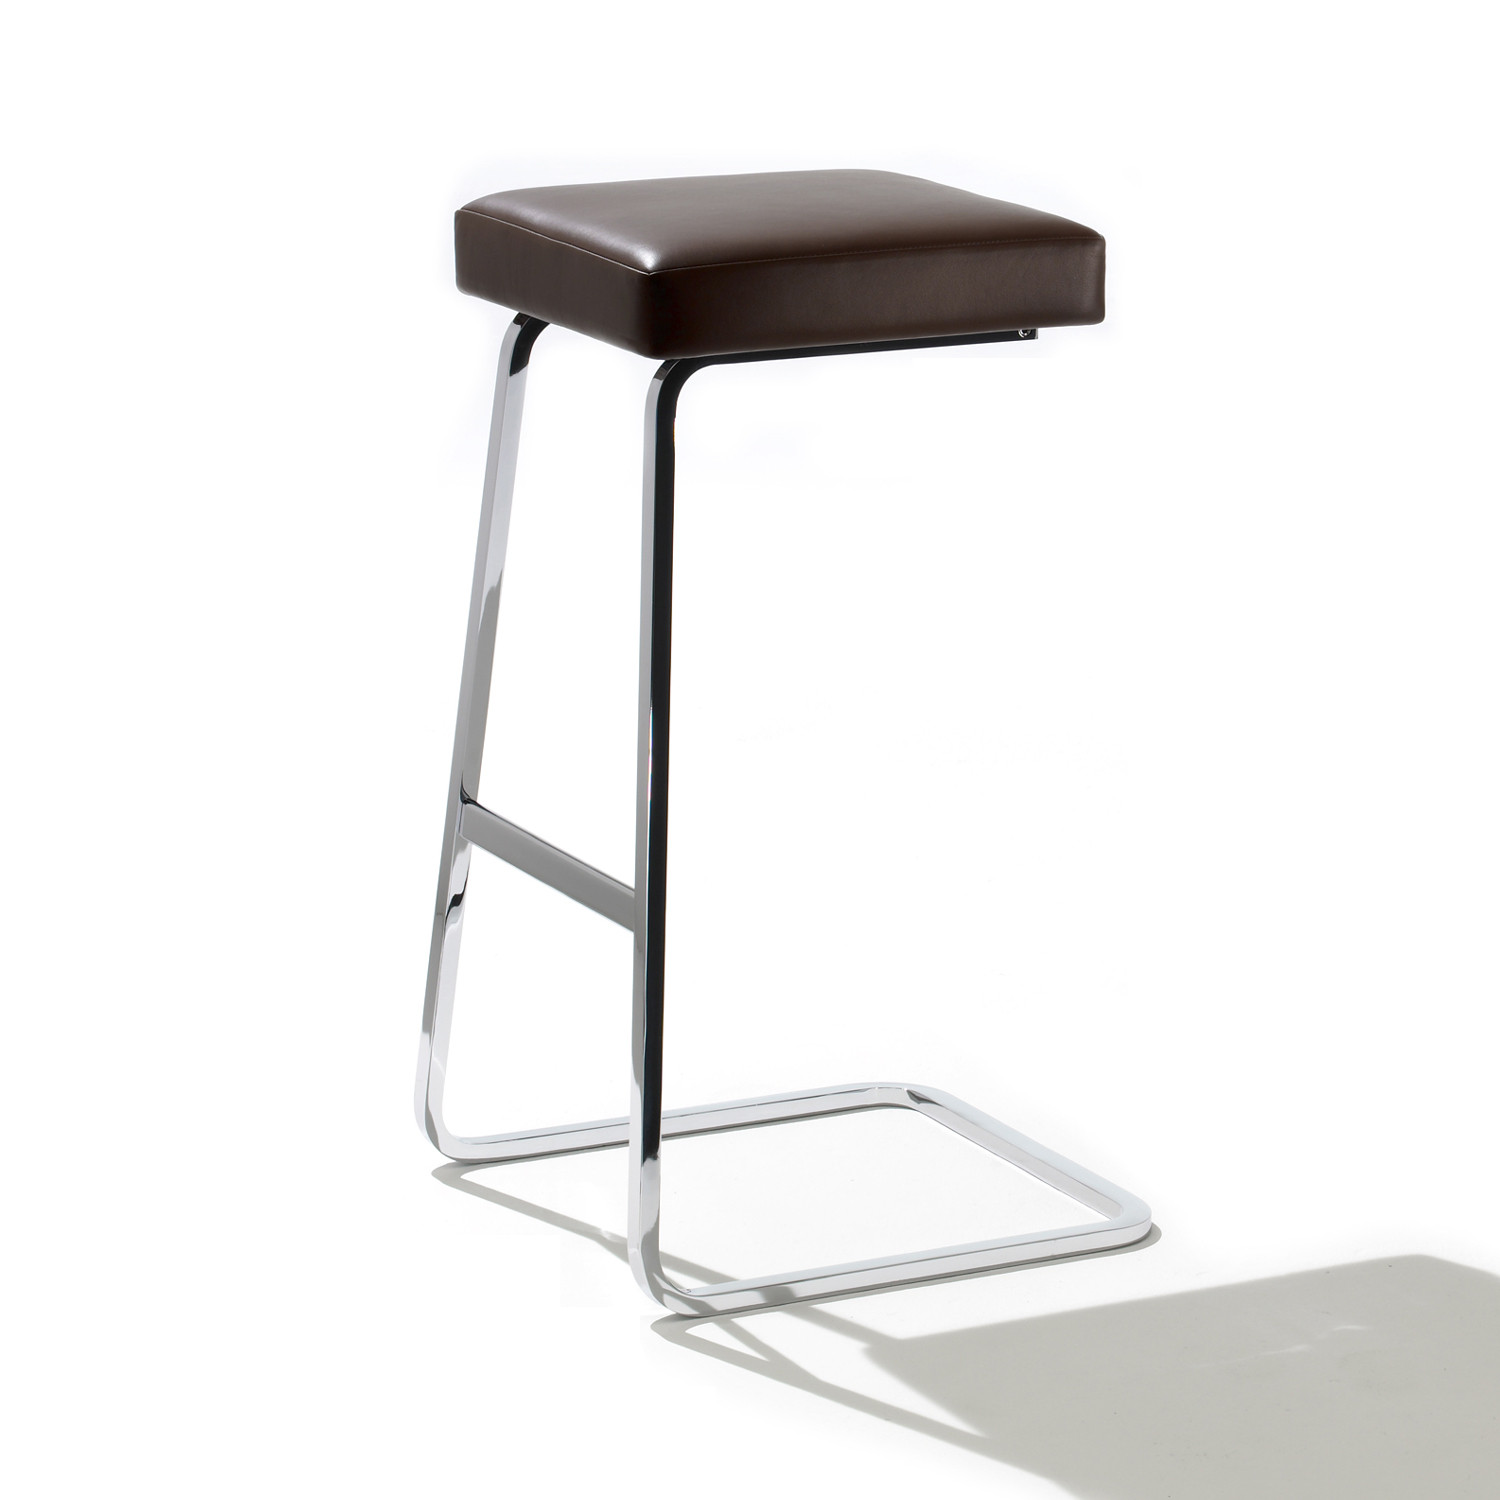 Barstools by Mies van der Rohe